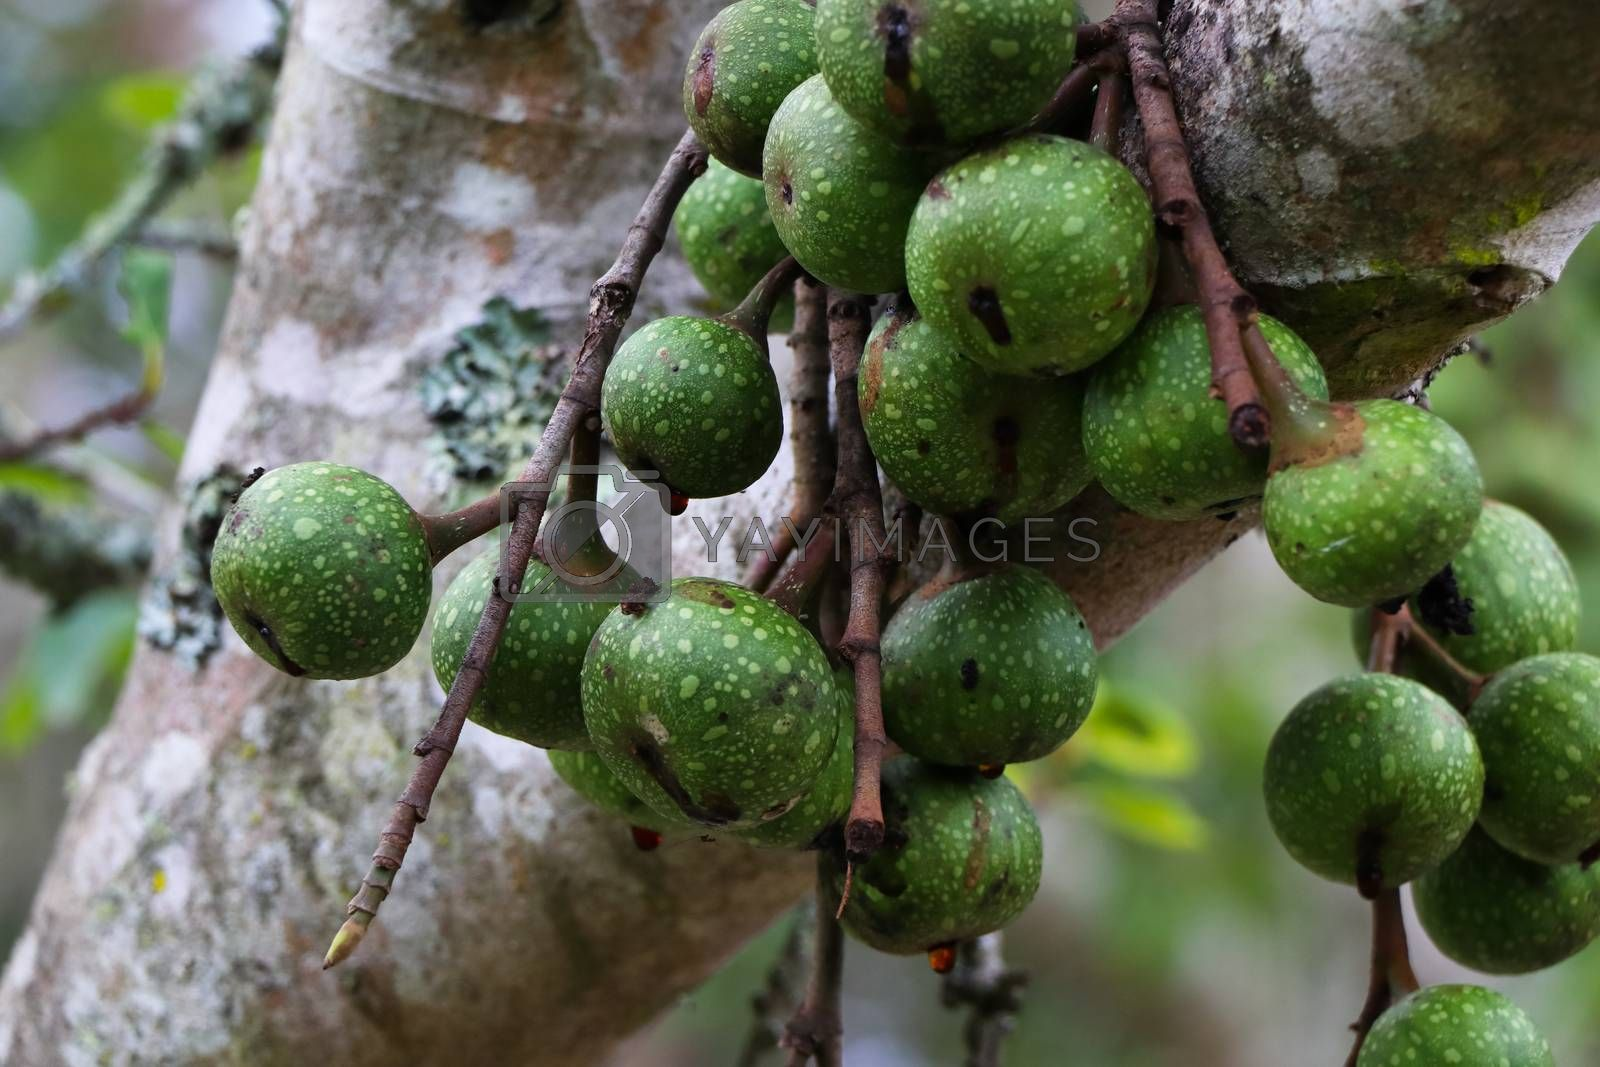 Natural growing wild rubber fig fruit (Ficus polita) in forest, George, South Africa